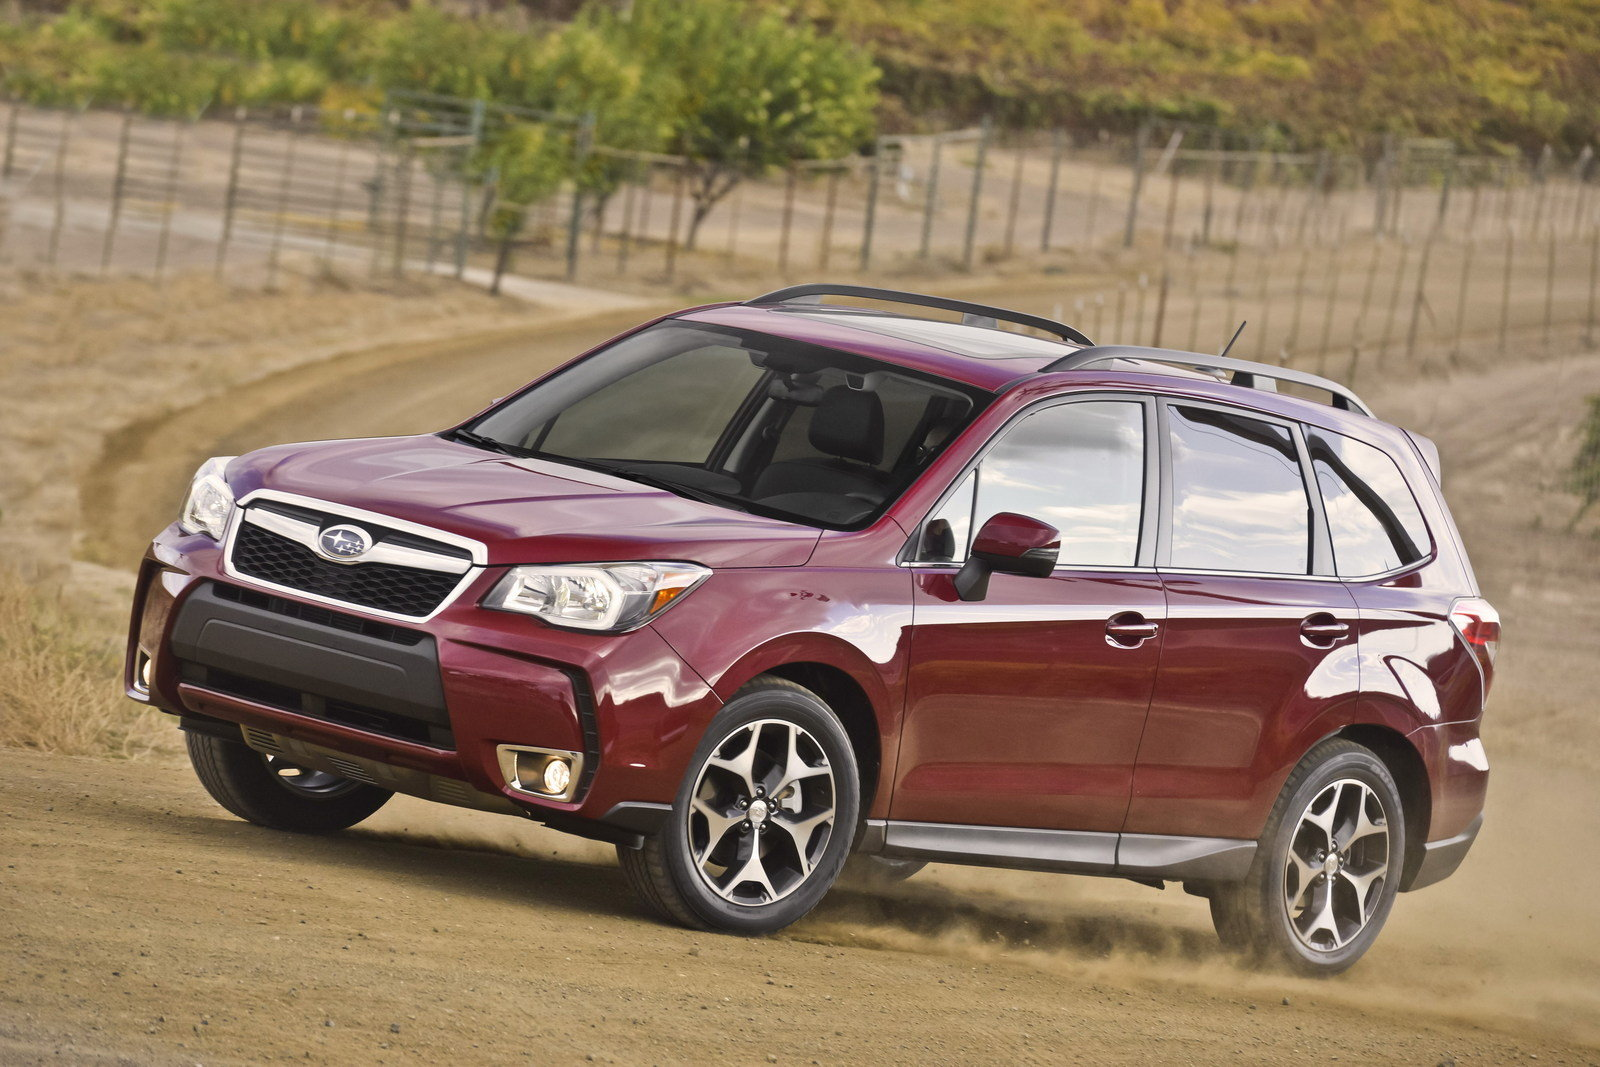 2015 - 2017 Subaru Forester - Picture 543776 | car review @ Top Speed